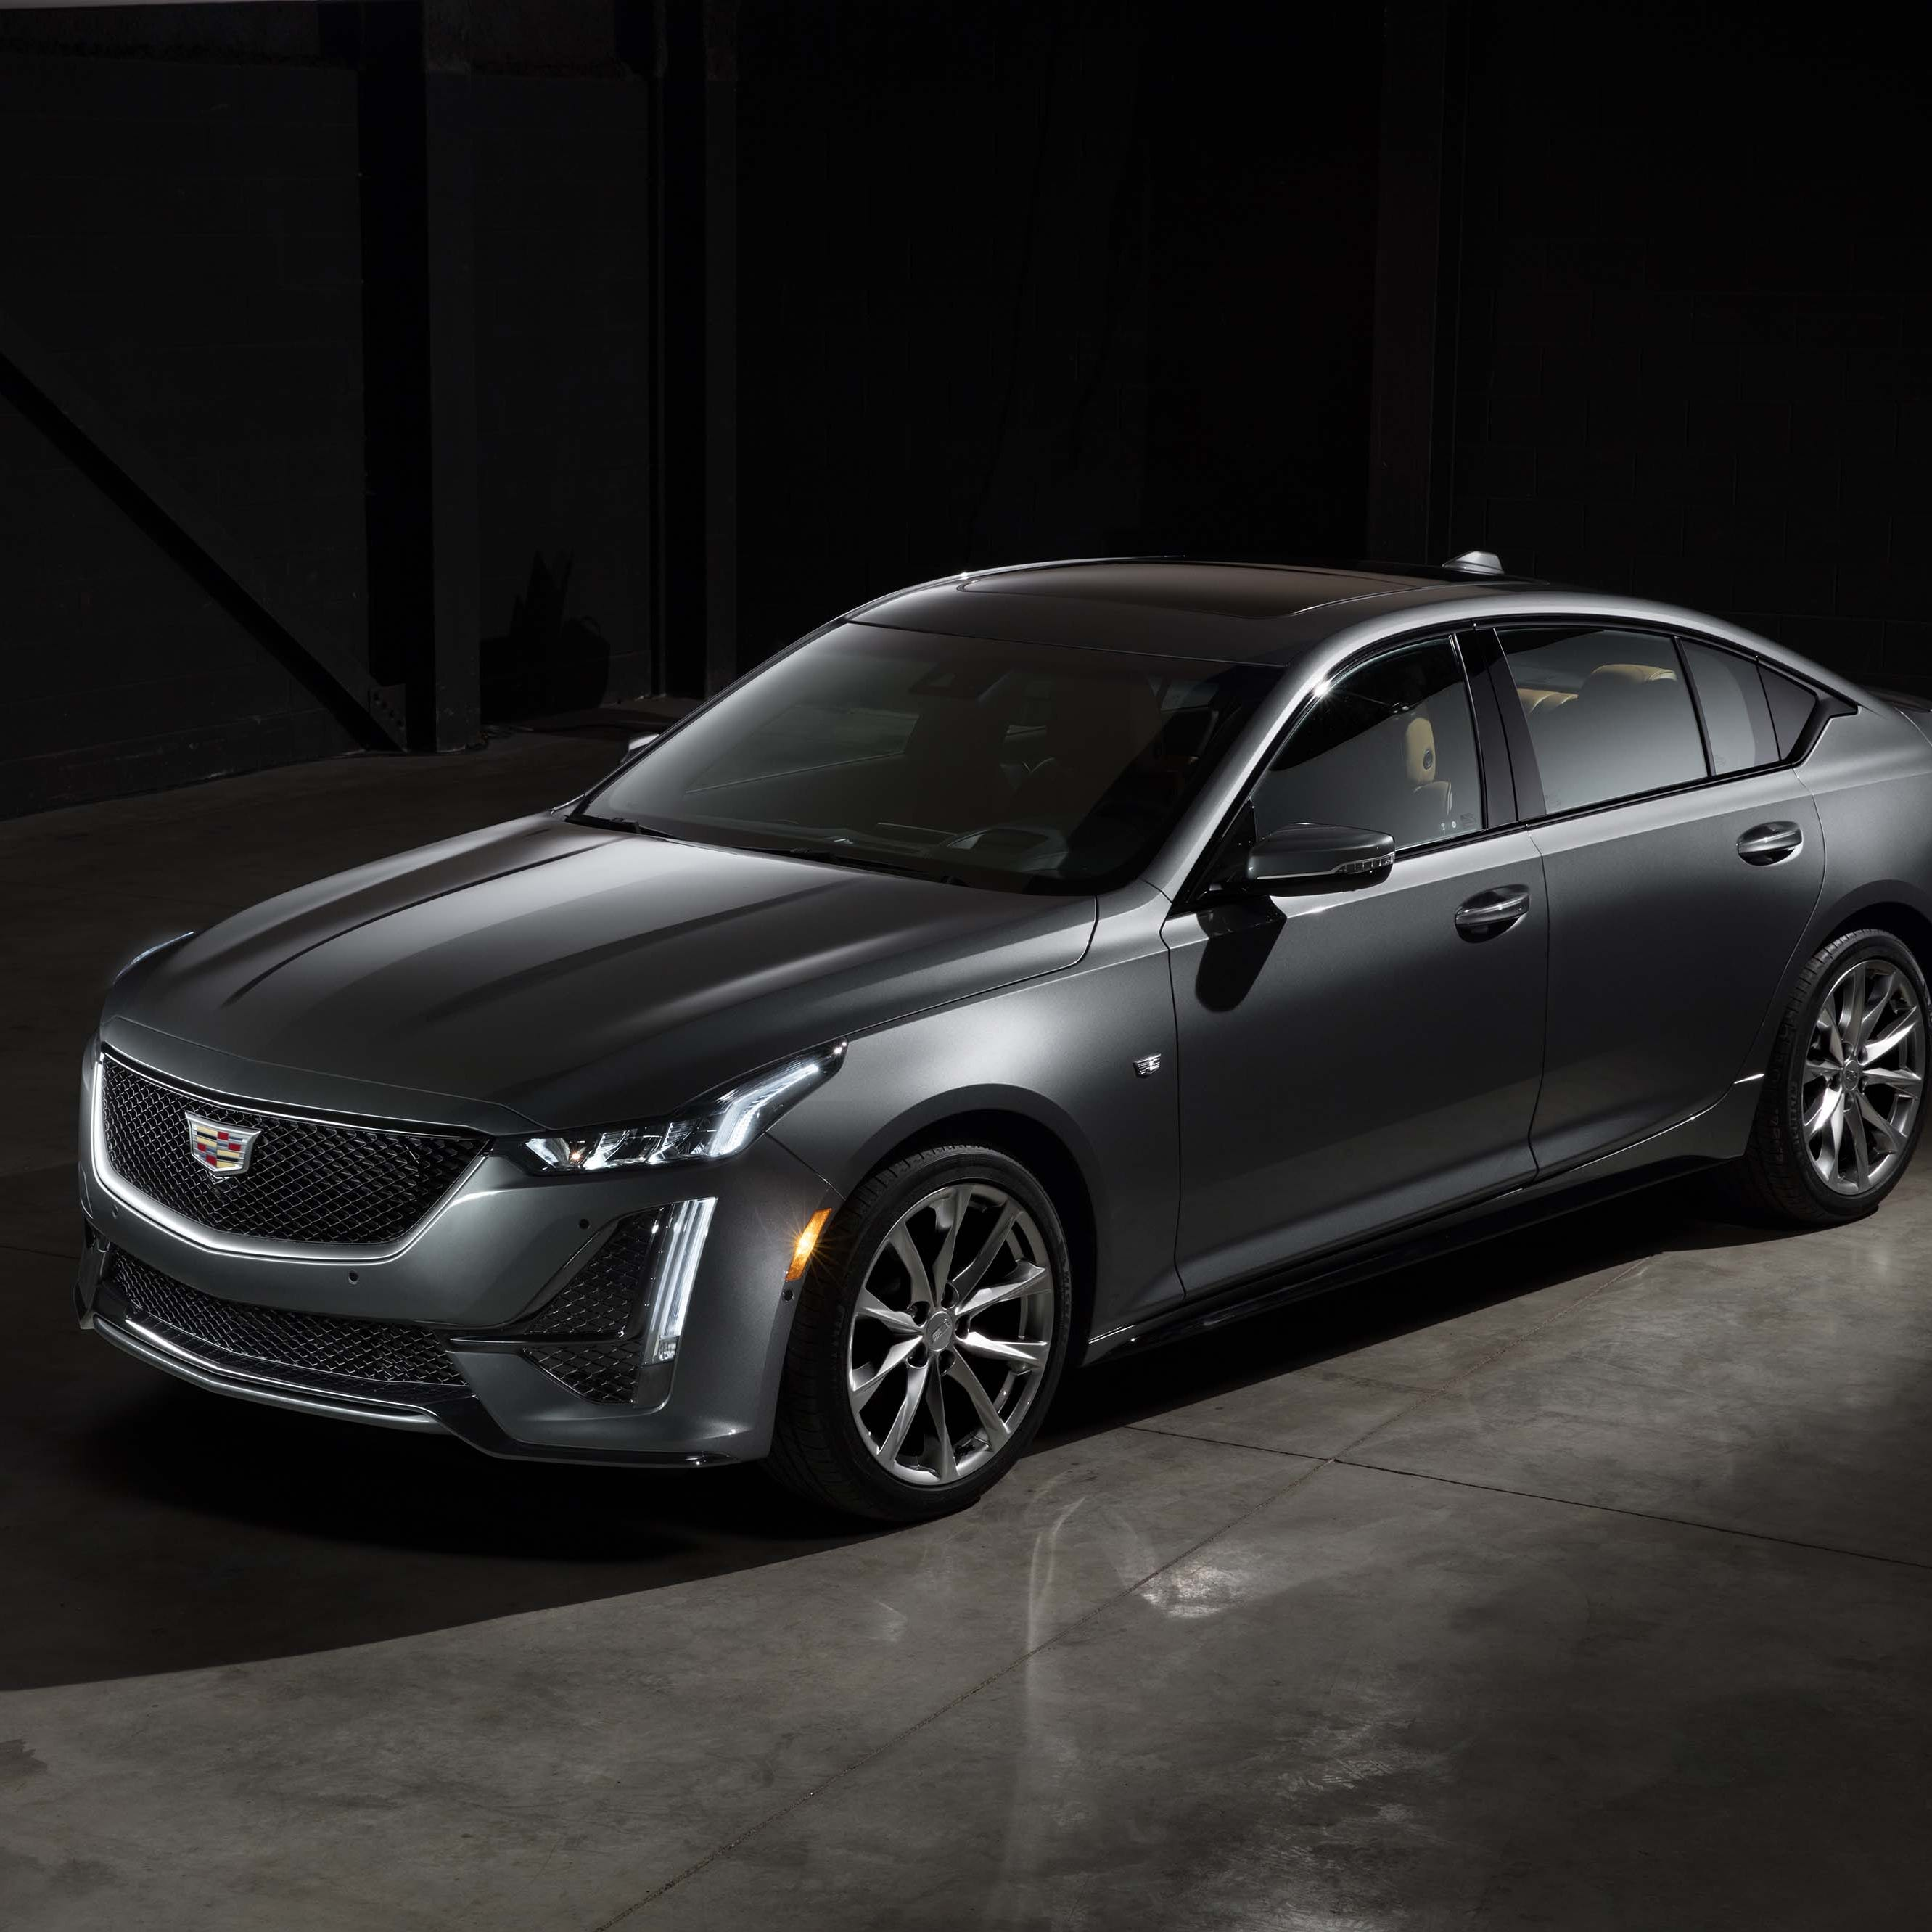 Cadillac's CTS sedan gets a refresh and new name – the CT5